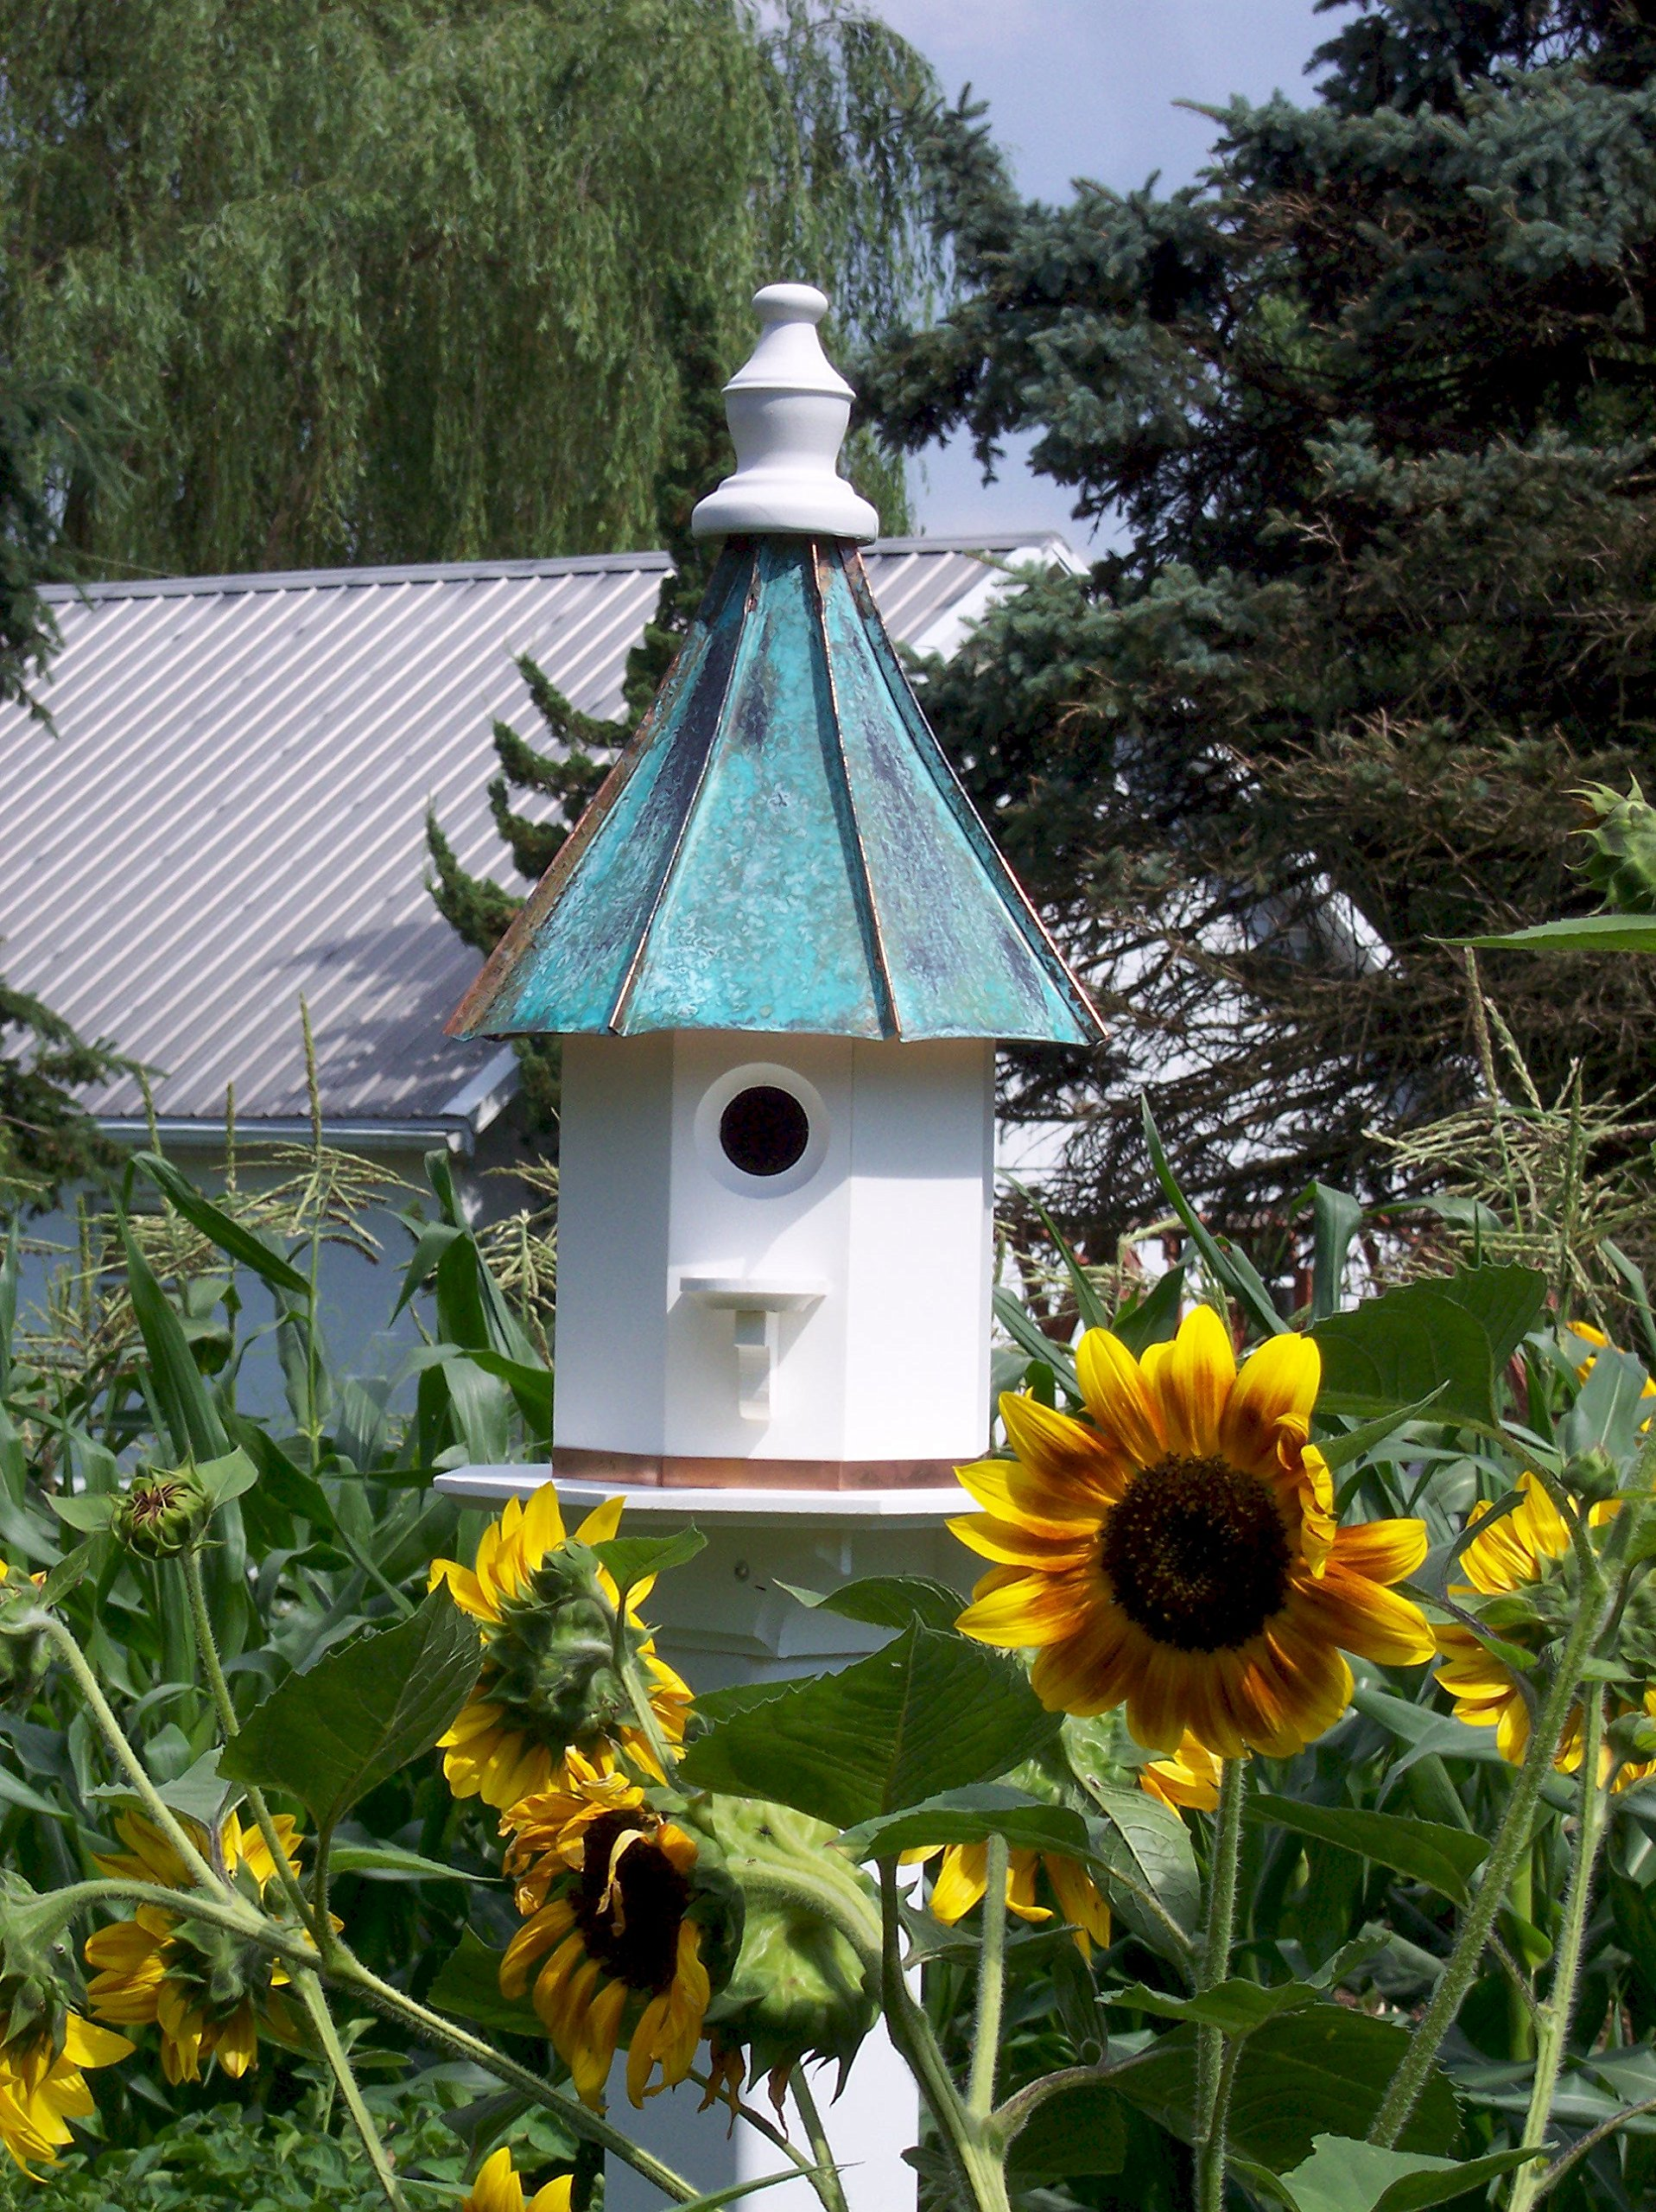 Woodpecker Birdhouse with Curved Patina Copper Roof